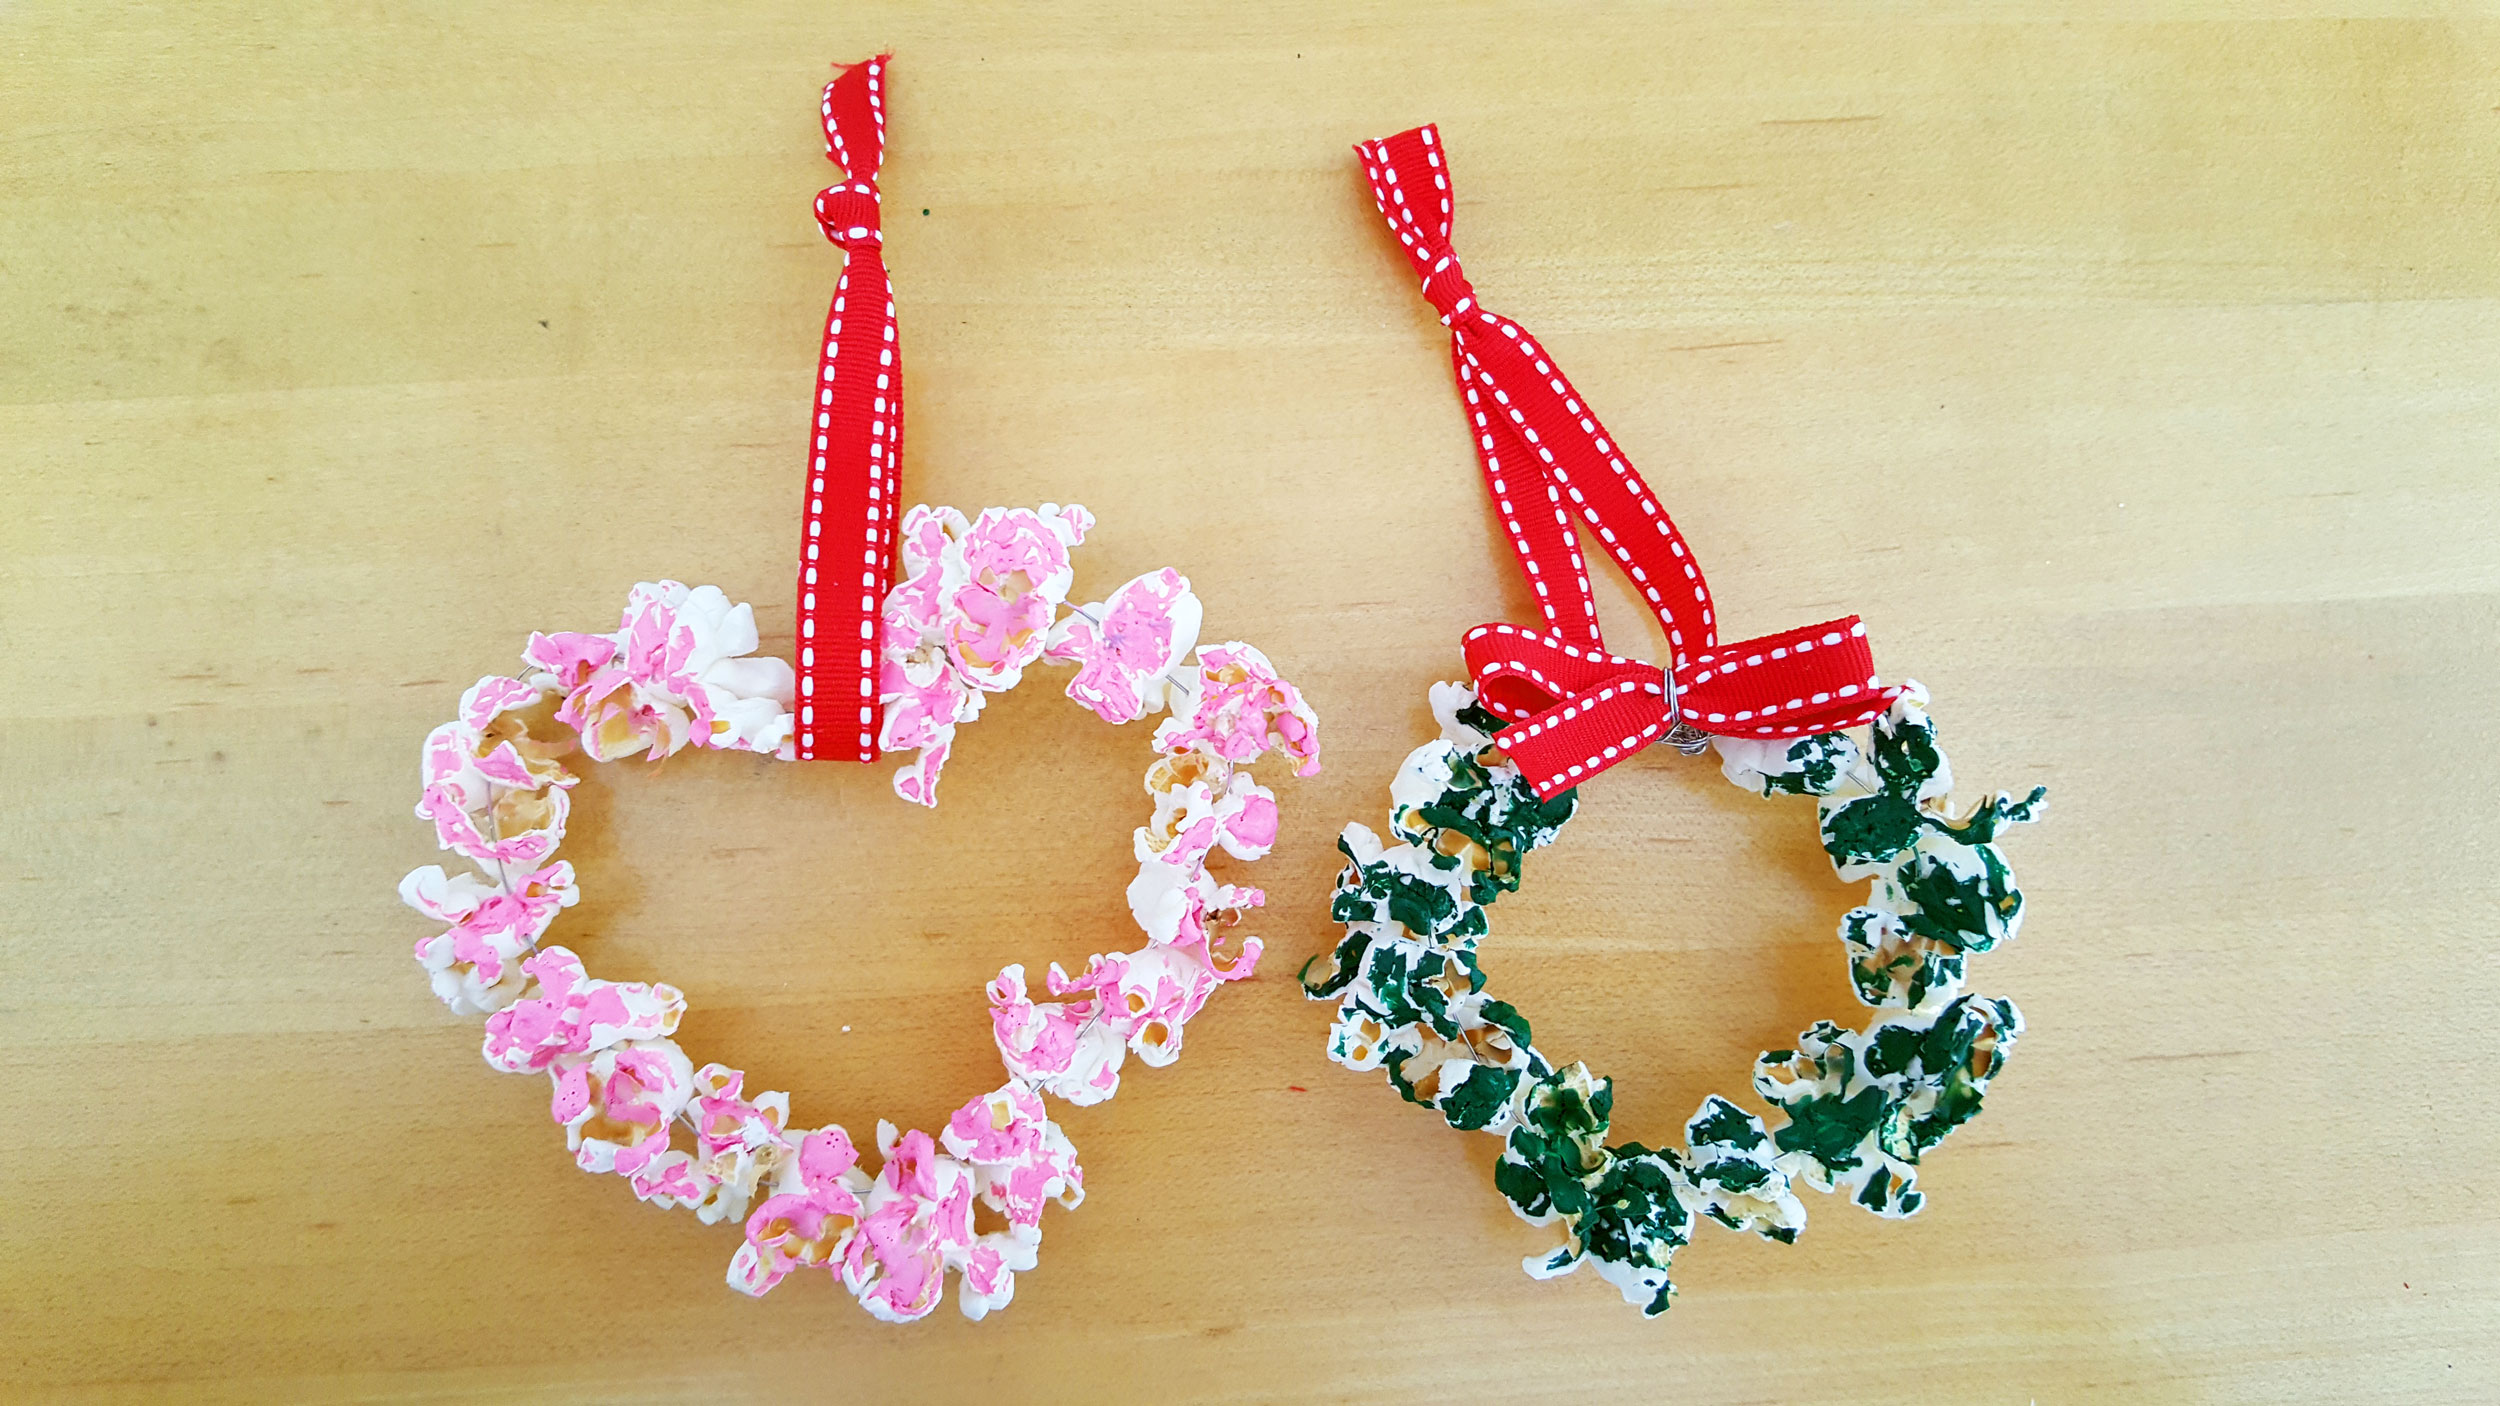 Two DIY popcorn ornaments, one shaped as a heart and the other a wreath. | OrnamentShop.com